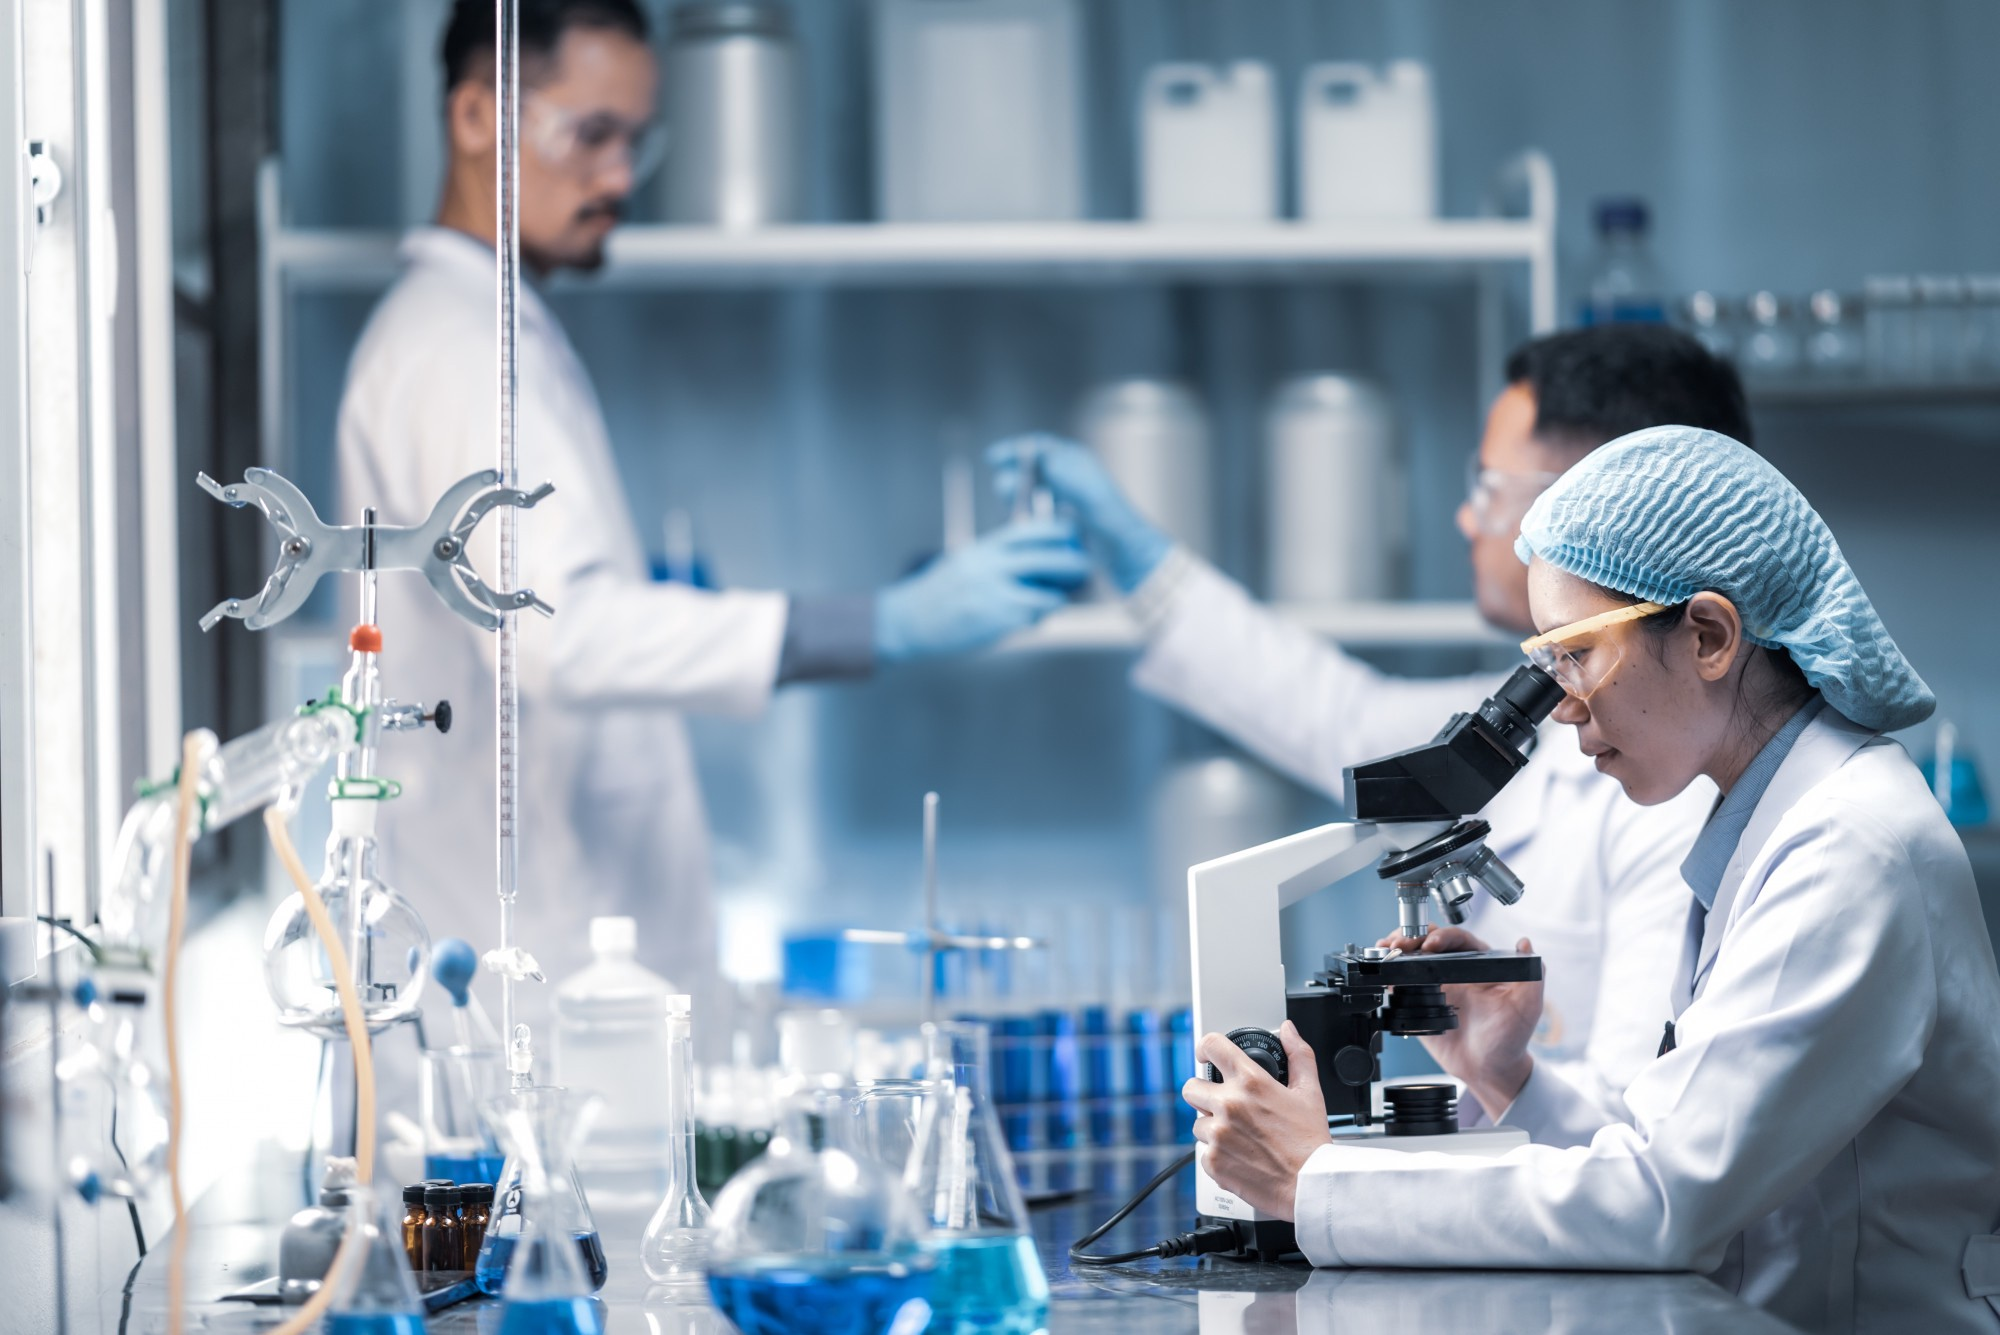 Health care researchers working in a life science laboratory.